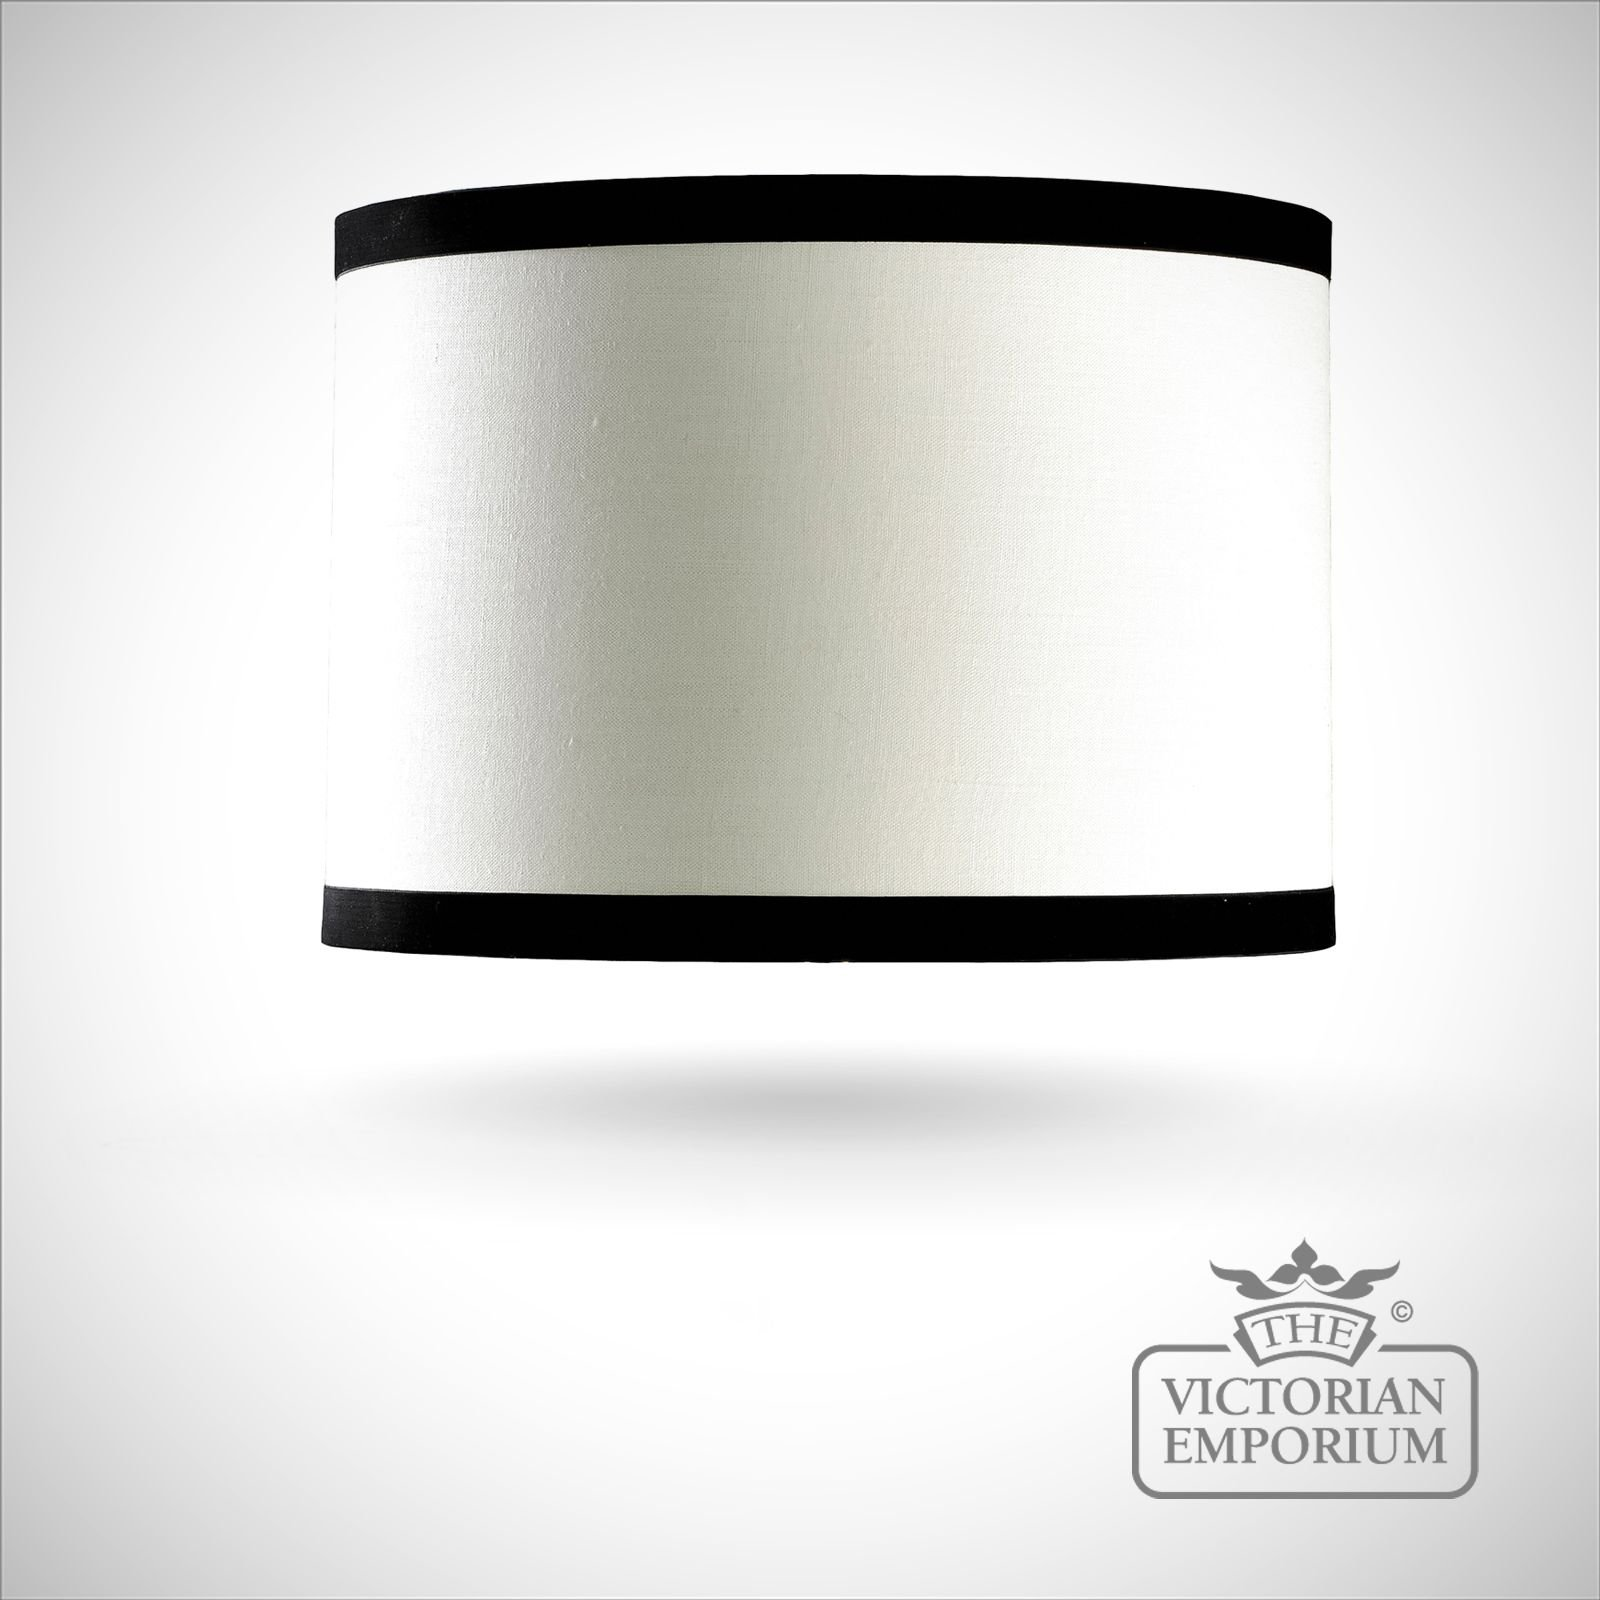 Cylinder Shade In Off White And Black